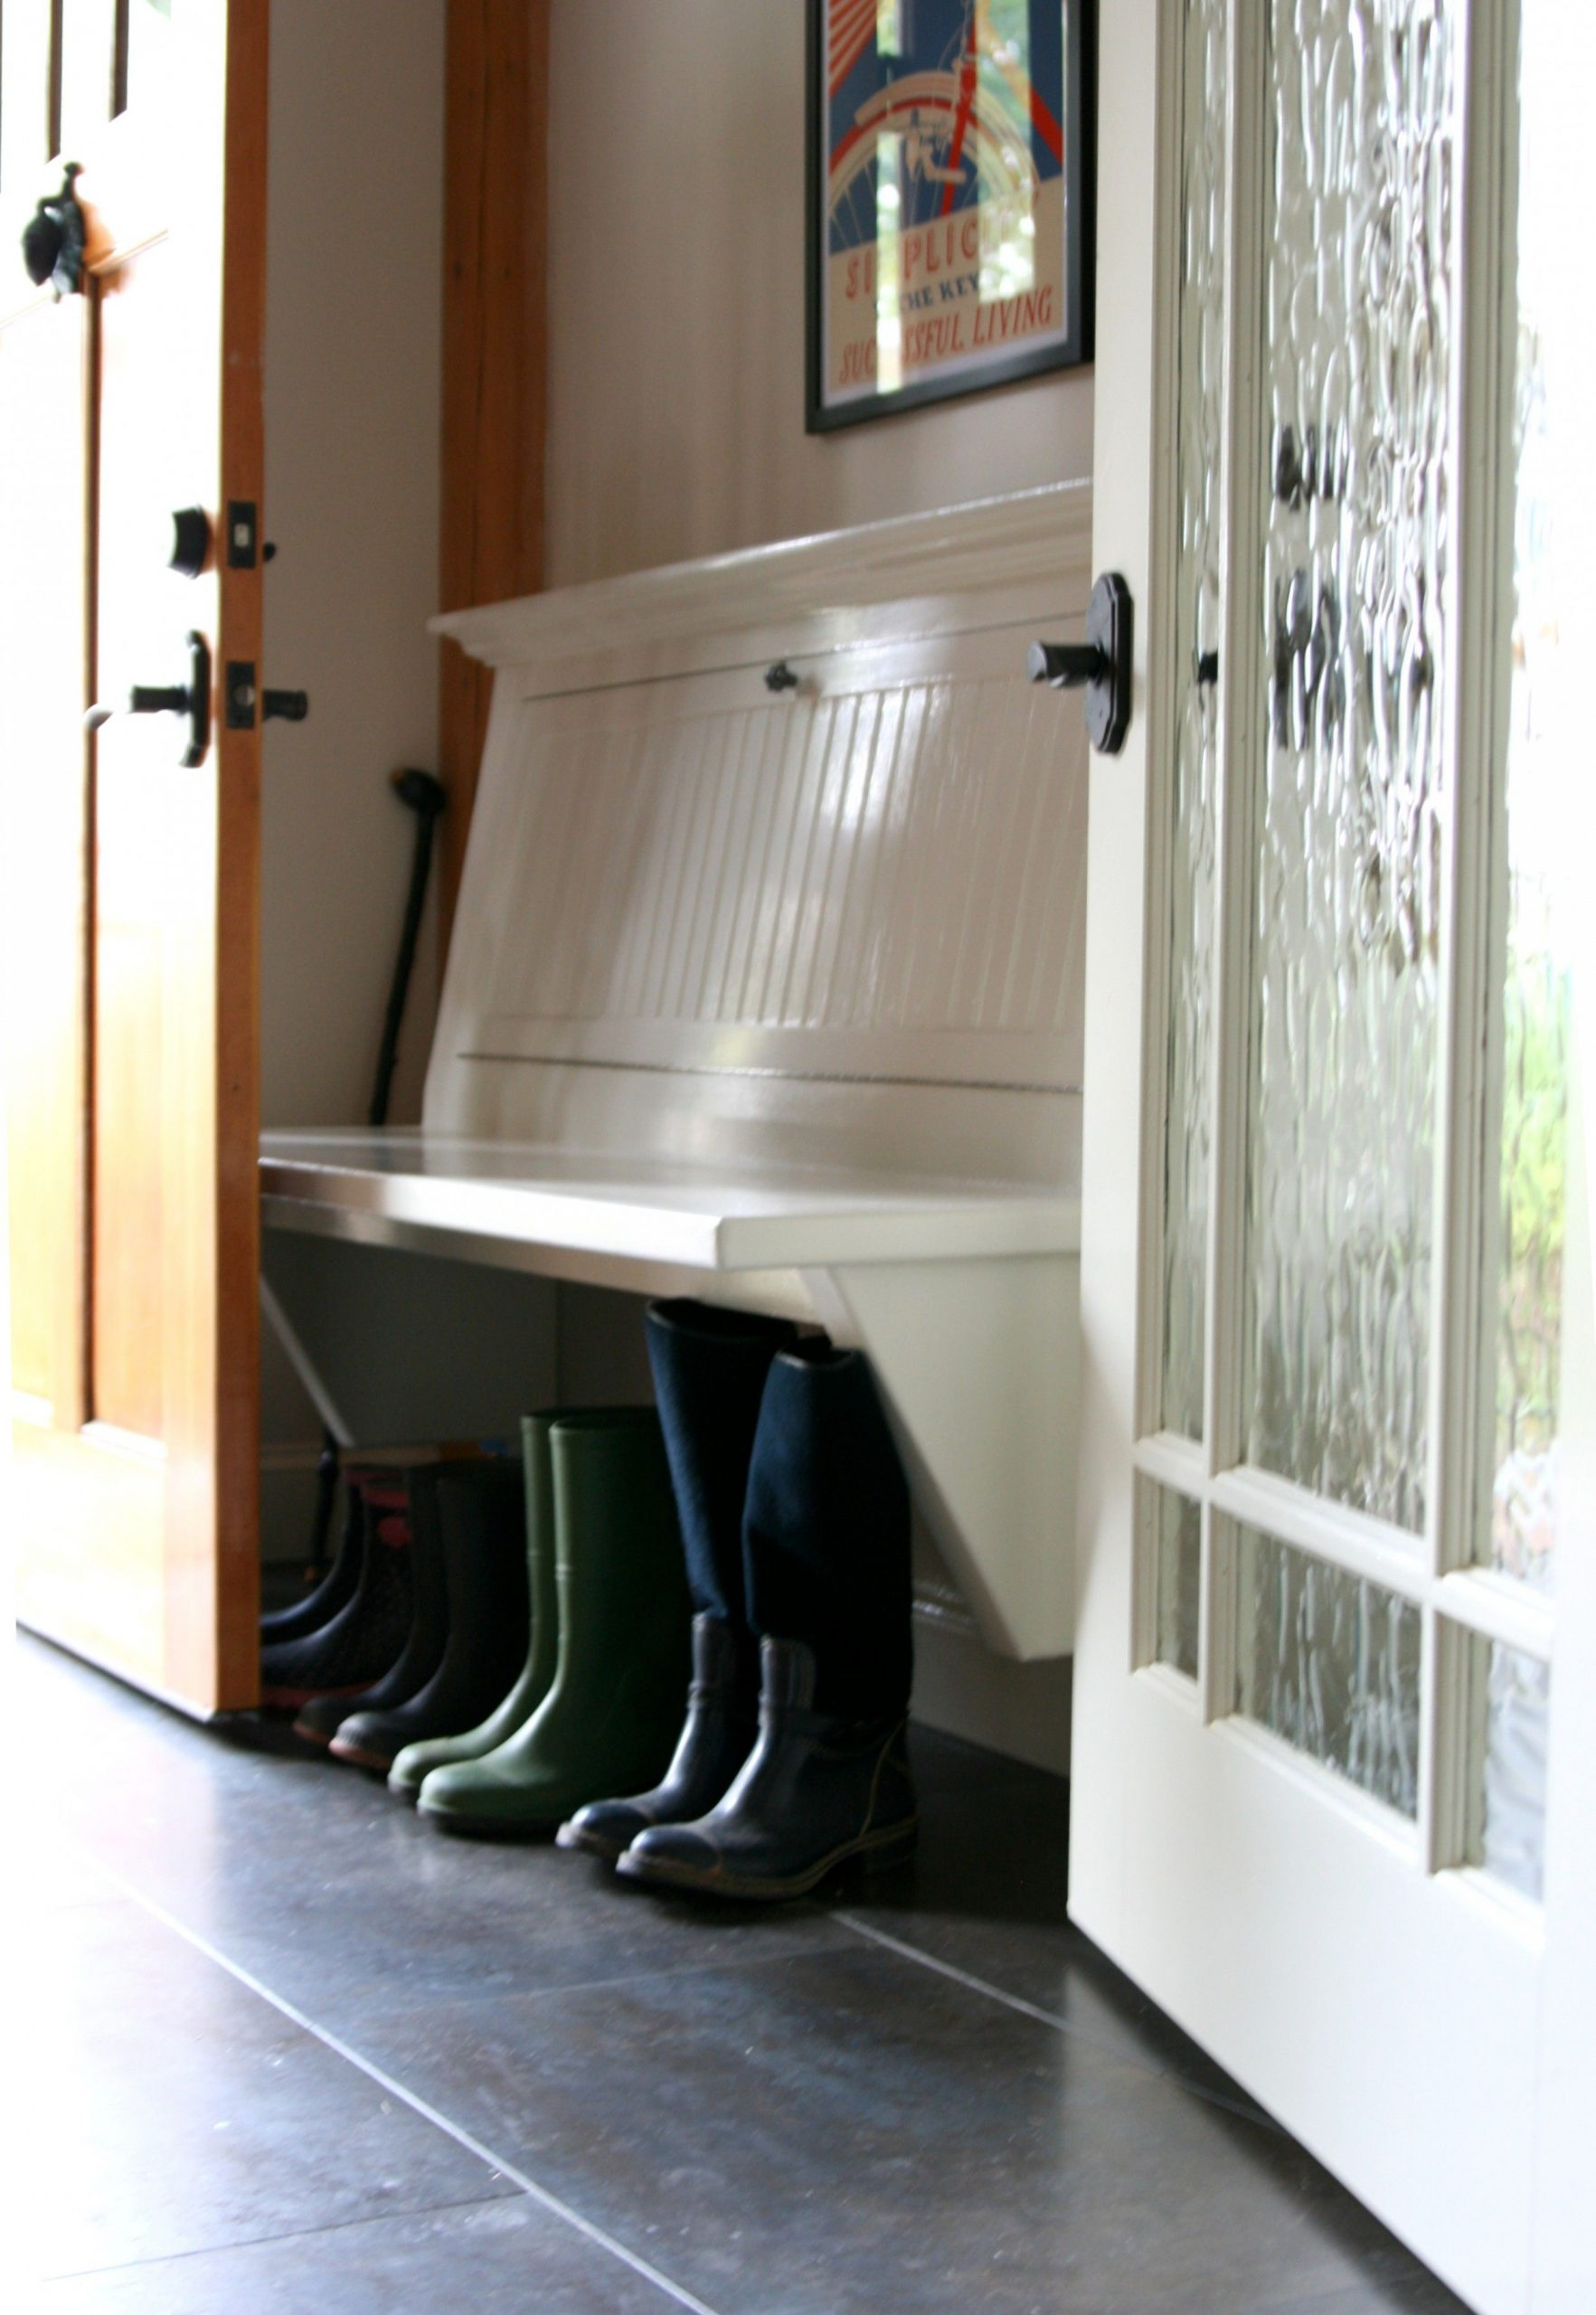 banquette over baseboard heat - Google Search  Baseboard heating  - Kitchen Cabinet Baseboard Heater